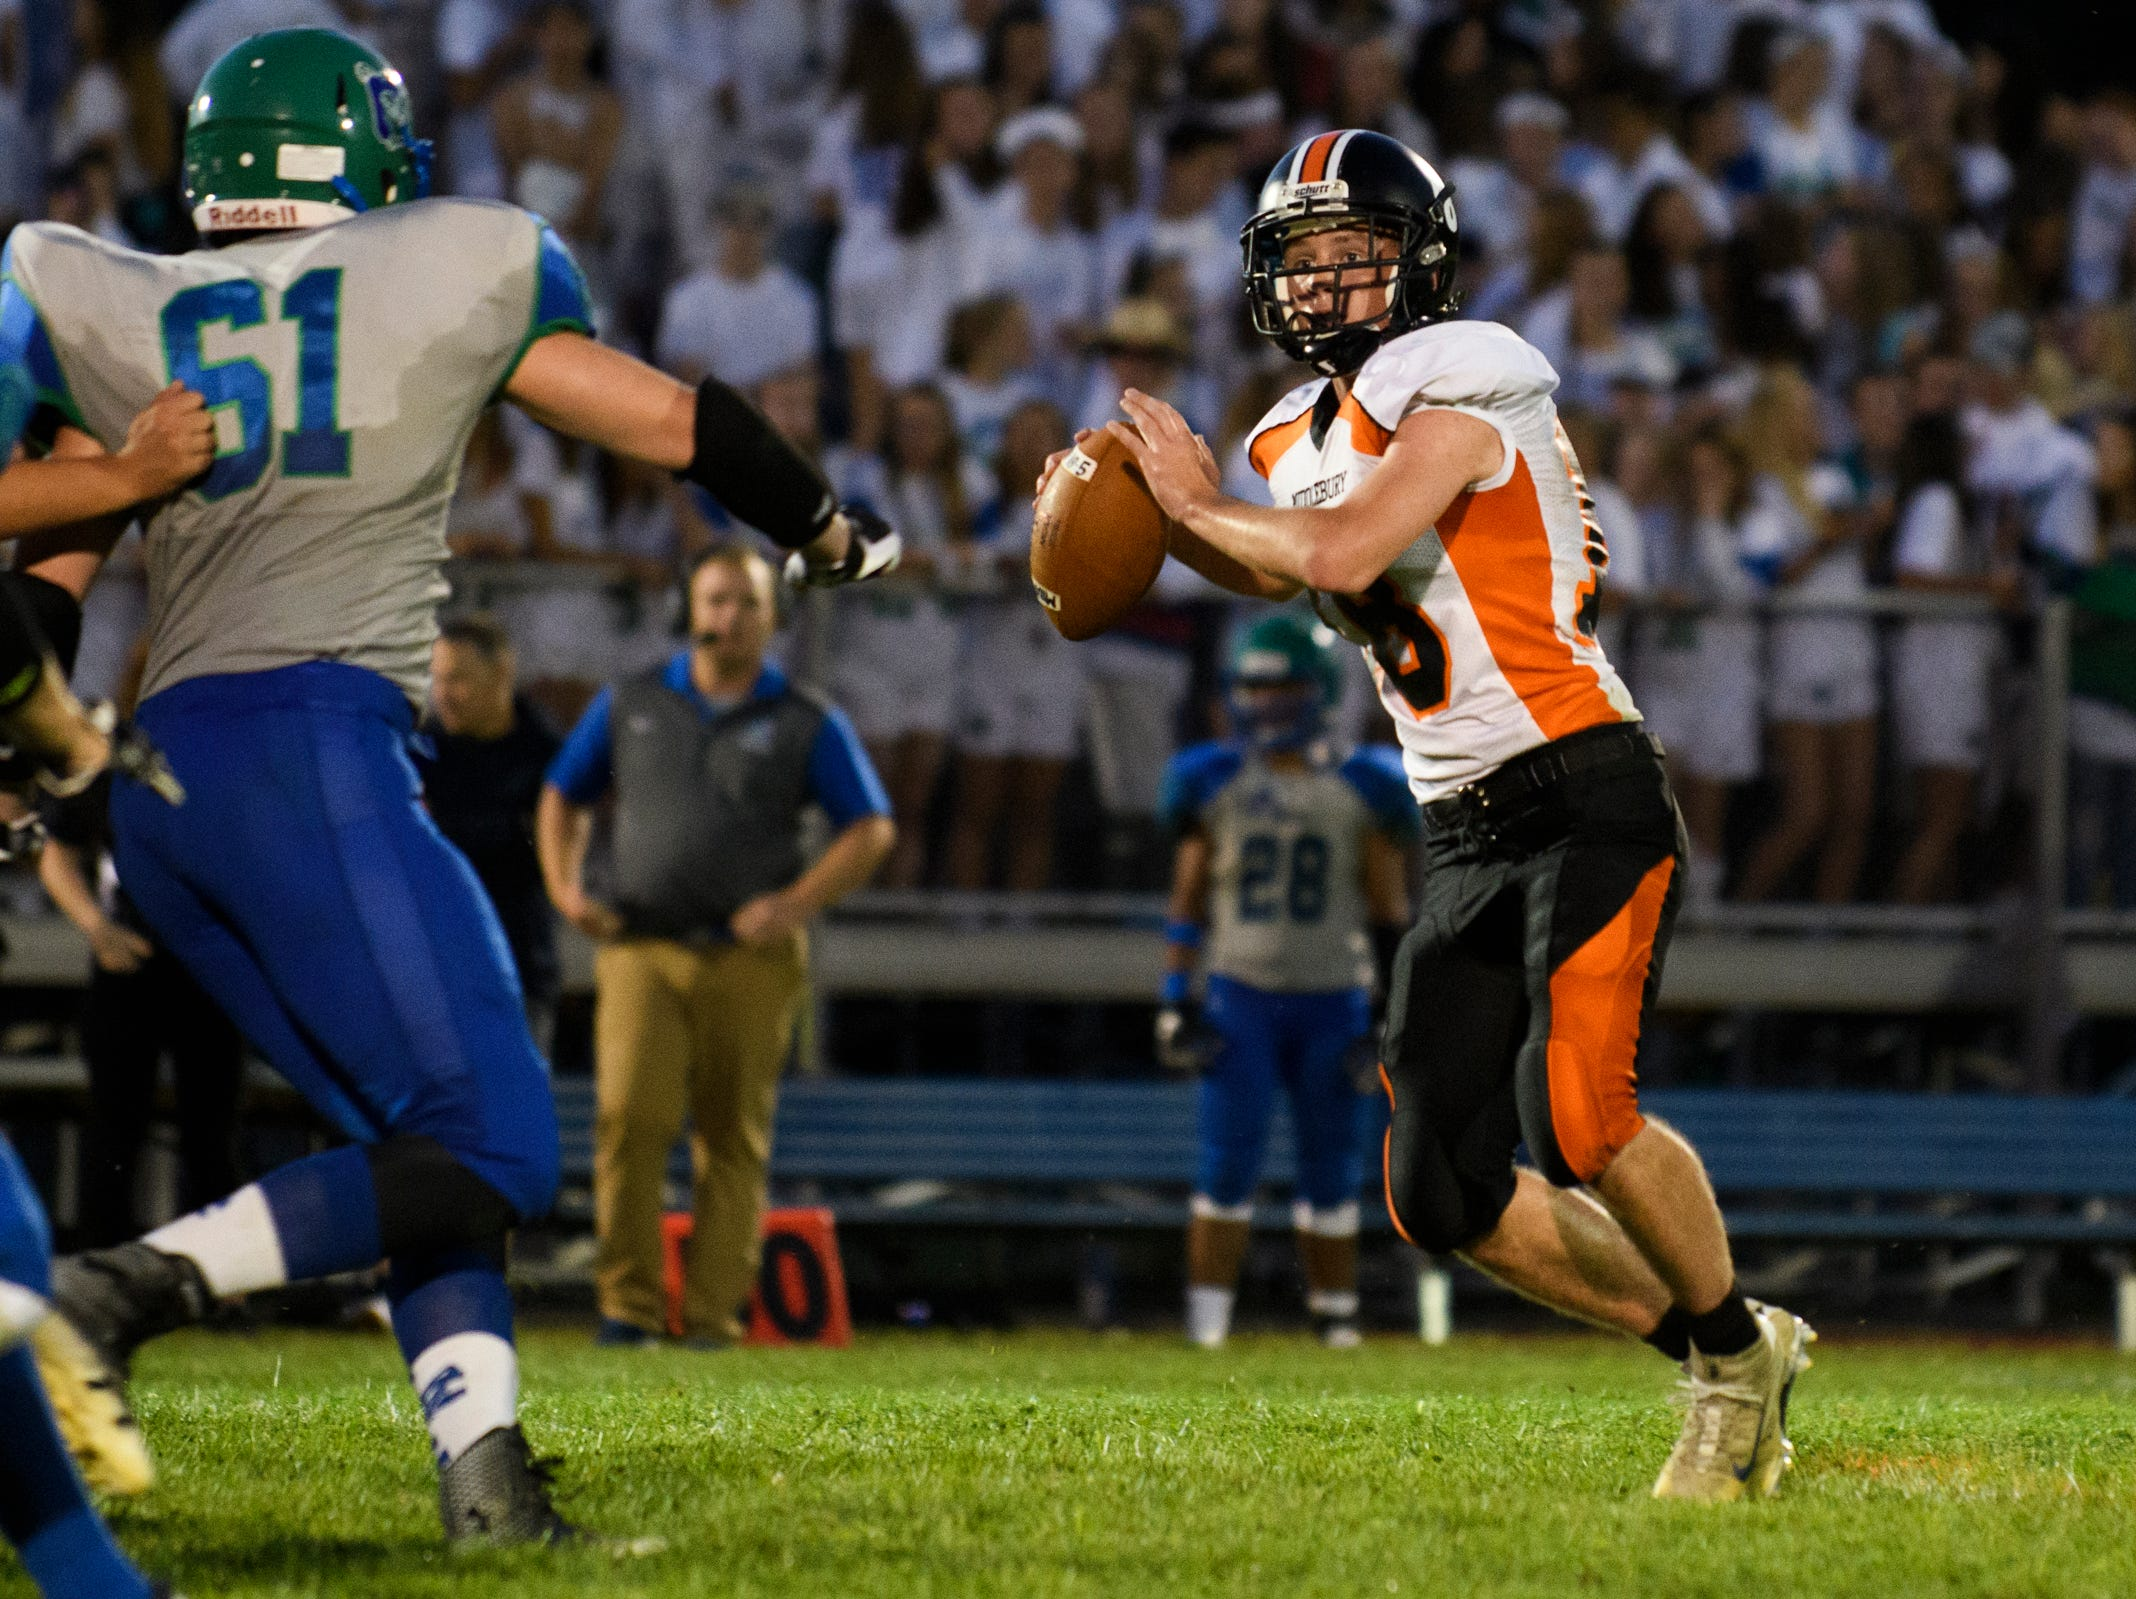 Middlebury quarterback Tim Goettelmann (18) looks to pass the ball during the boys high school football game between Middlebury and Colchester at Colchester high school on Friday night August 31, 2018 in Colchester.